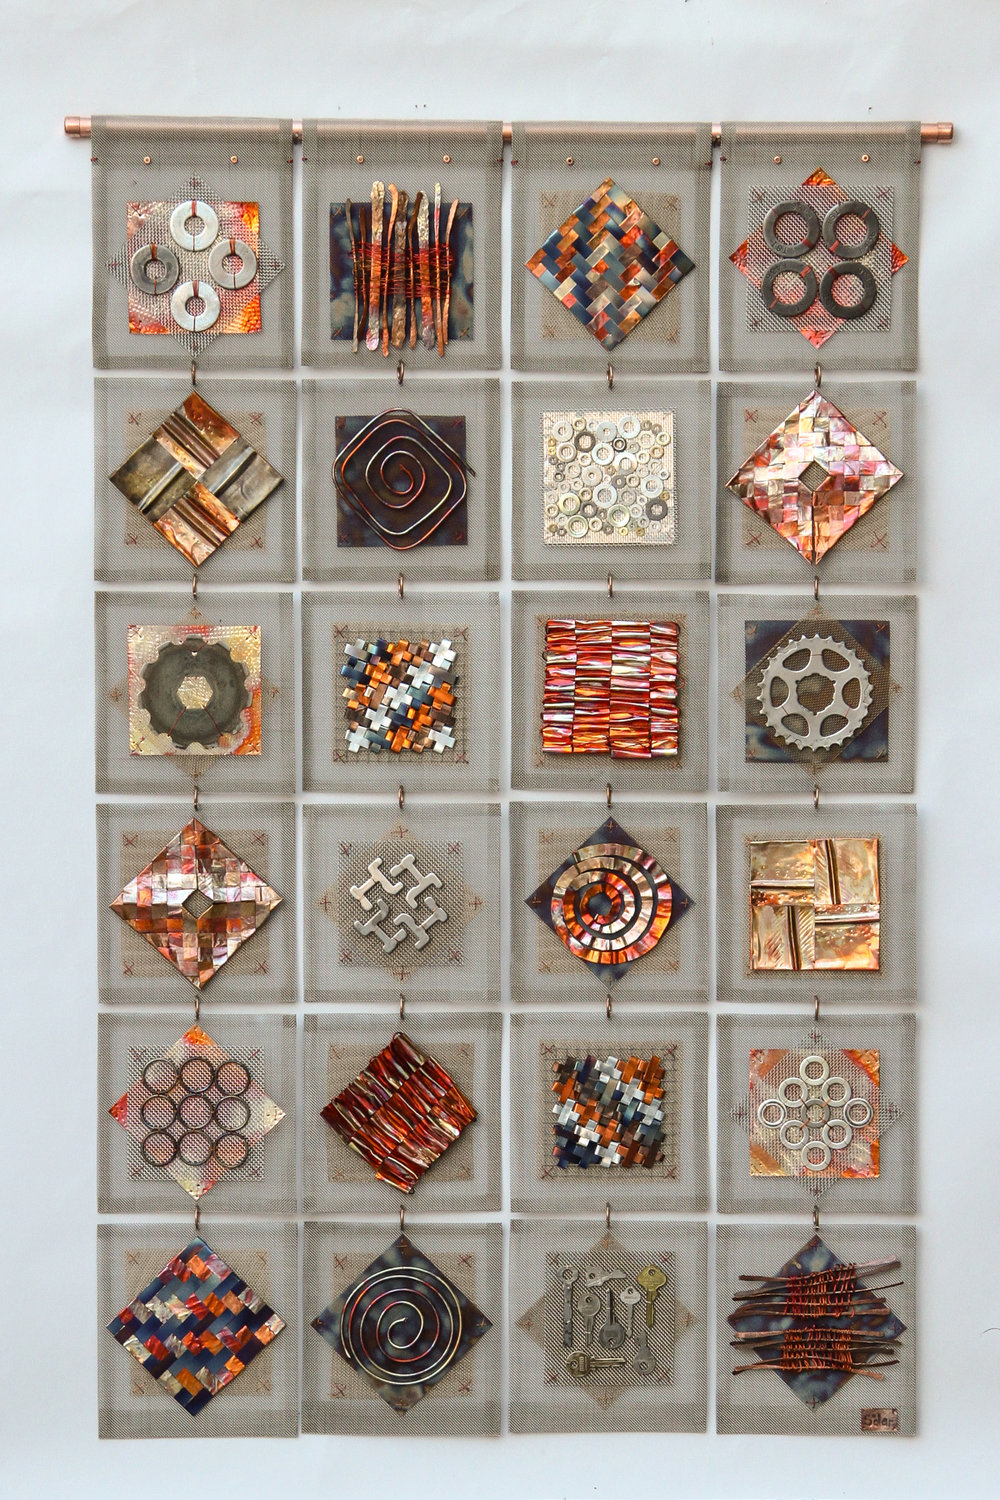 Scrapyard Quilt.24 panels of stainless mesh, onto which are stitched elements using copper wire, copper strip, brass, washers, industrial  scrap, bike parts. 74x118cm/29x 46""